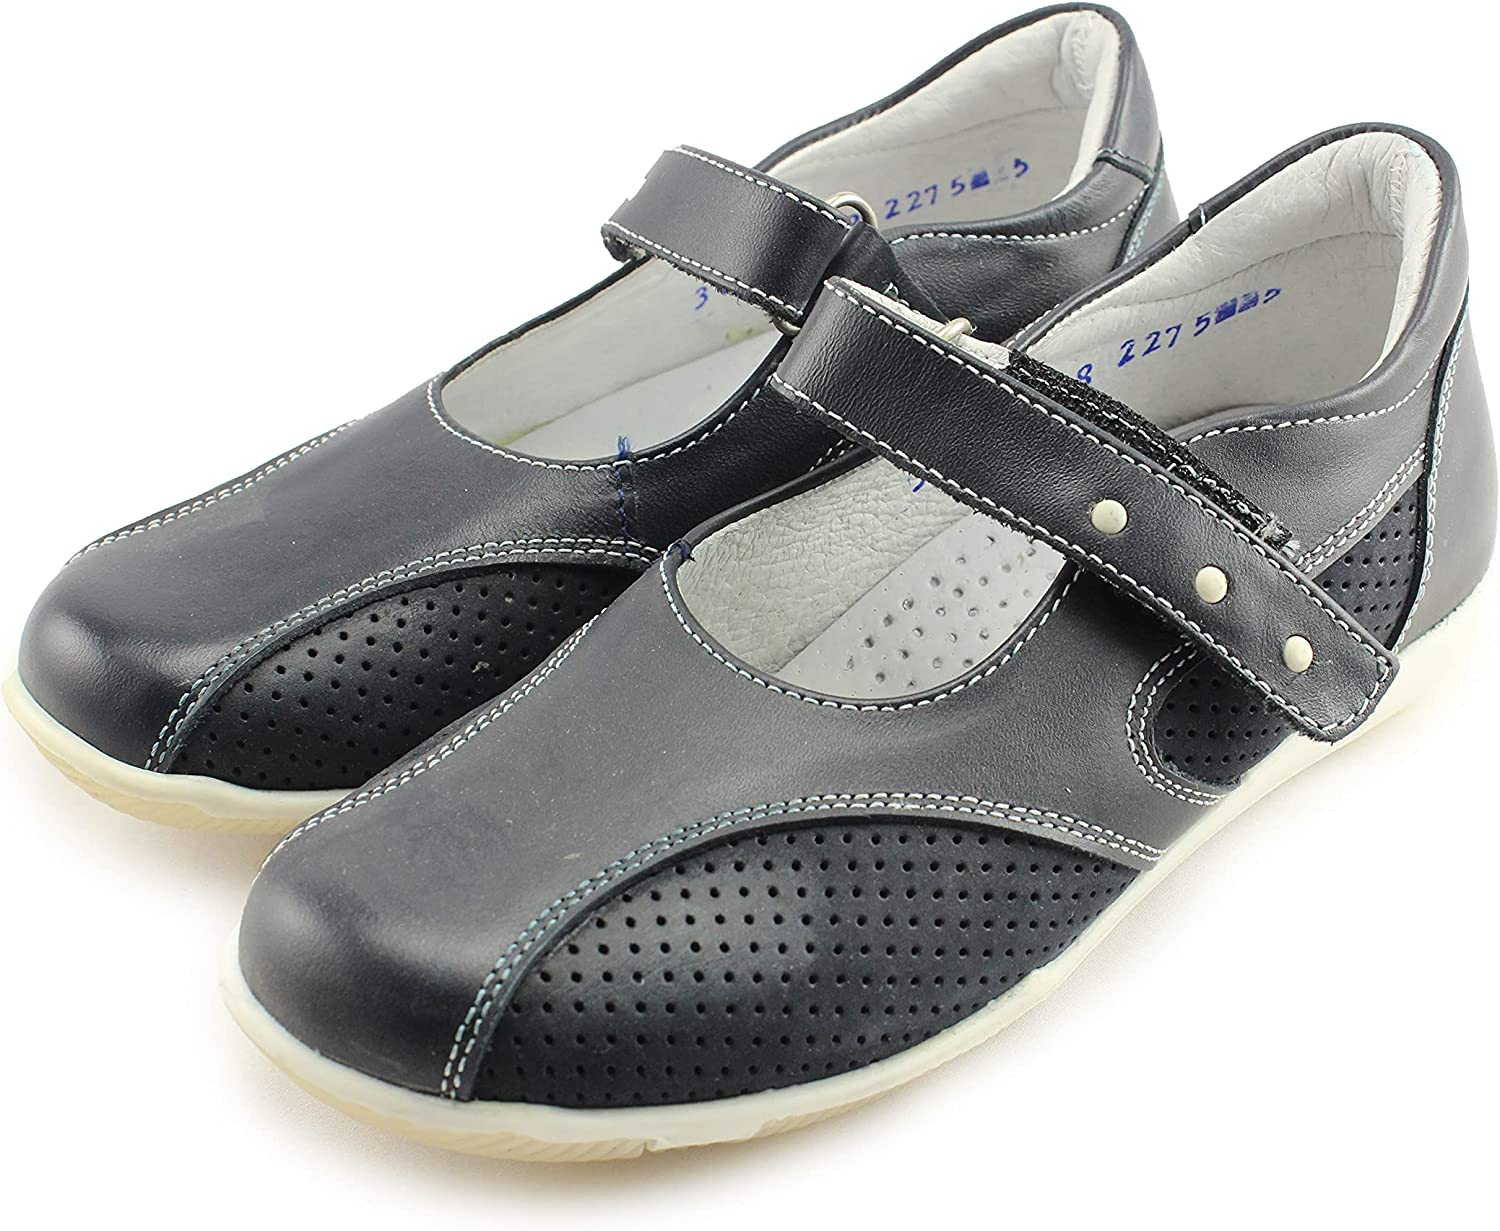 Venettini Girls Mary Jane Leather Shoes with Arch, Ankle, and Orthopedic Support (3808 Navy Leather)